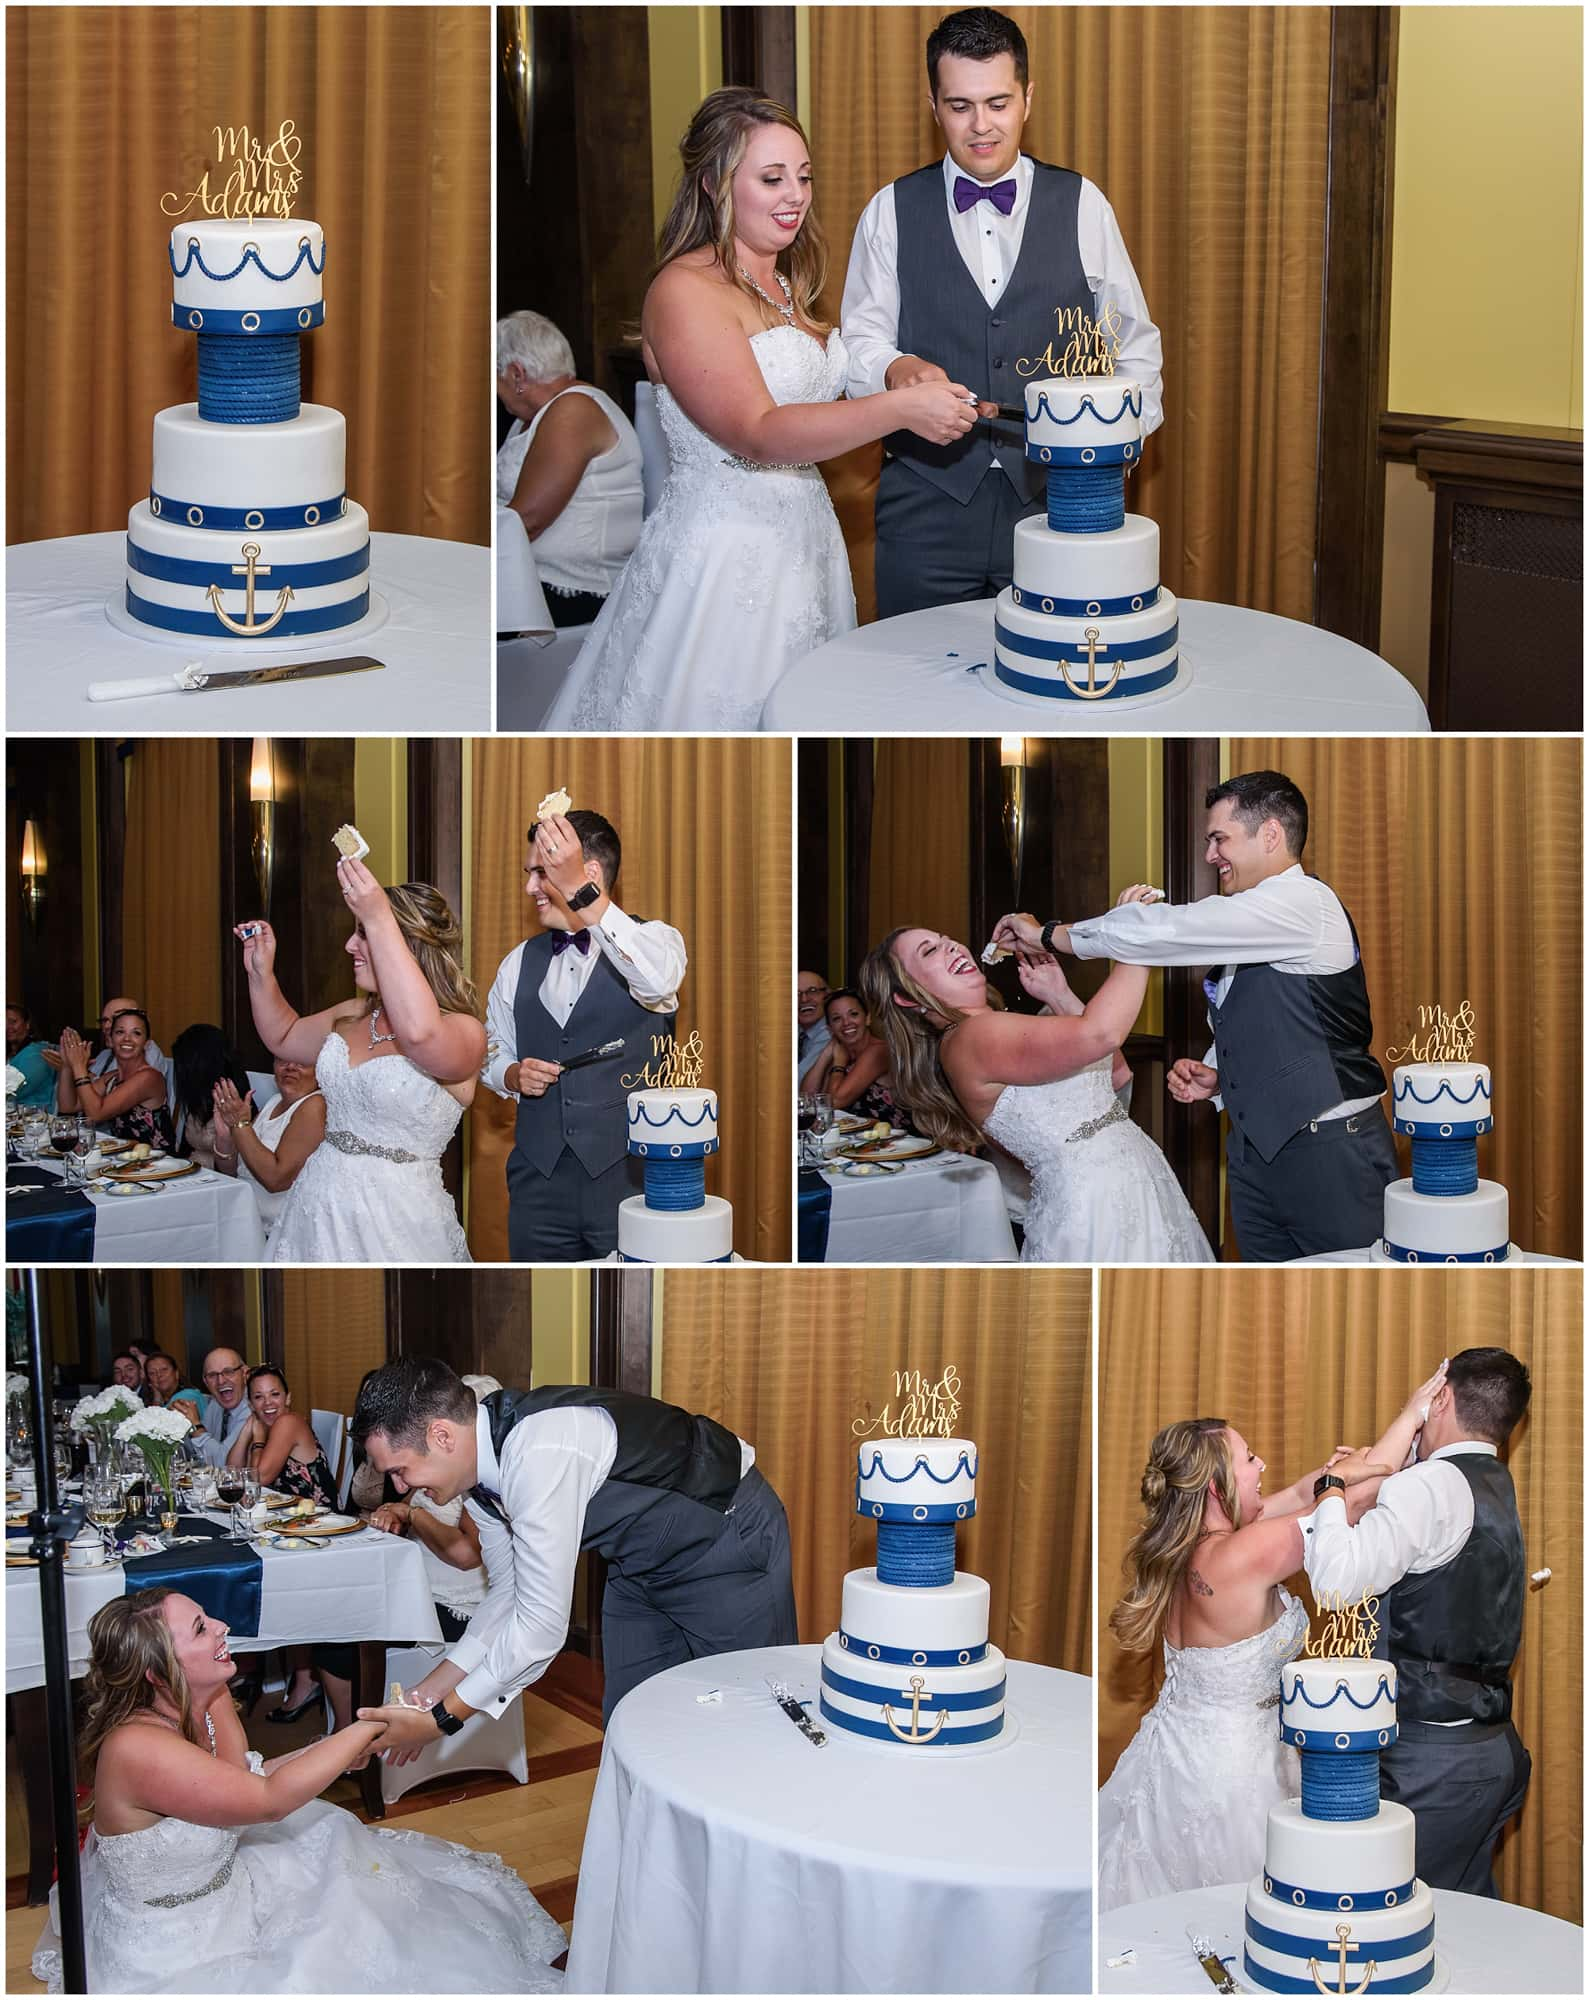 The bride and groom cut their wedding cake and then feed each other during their wedding reception at Juno Tower in Halifax.